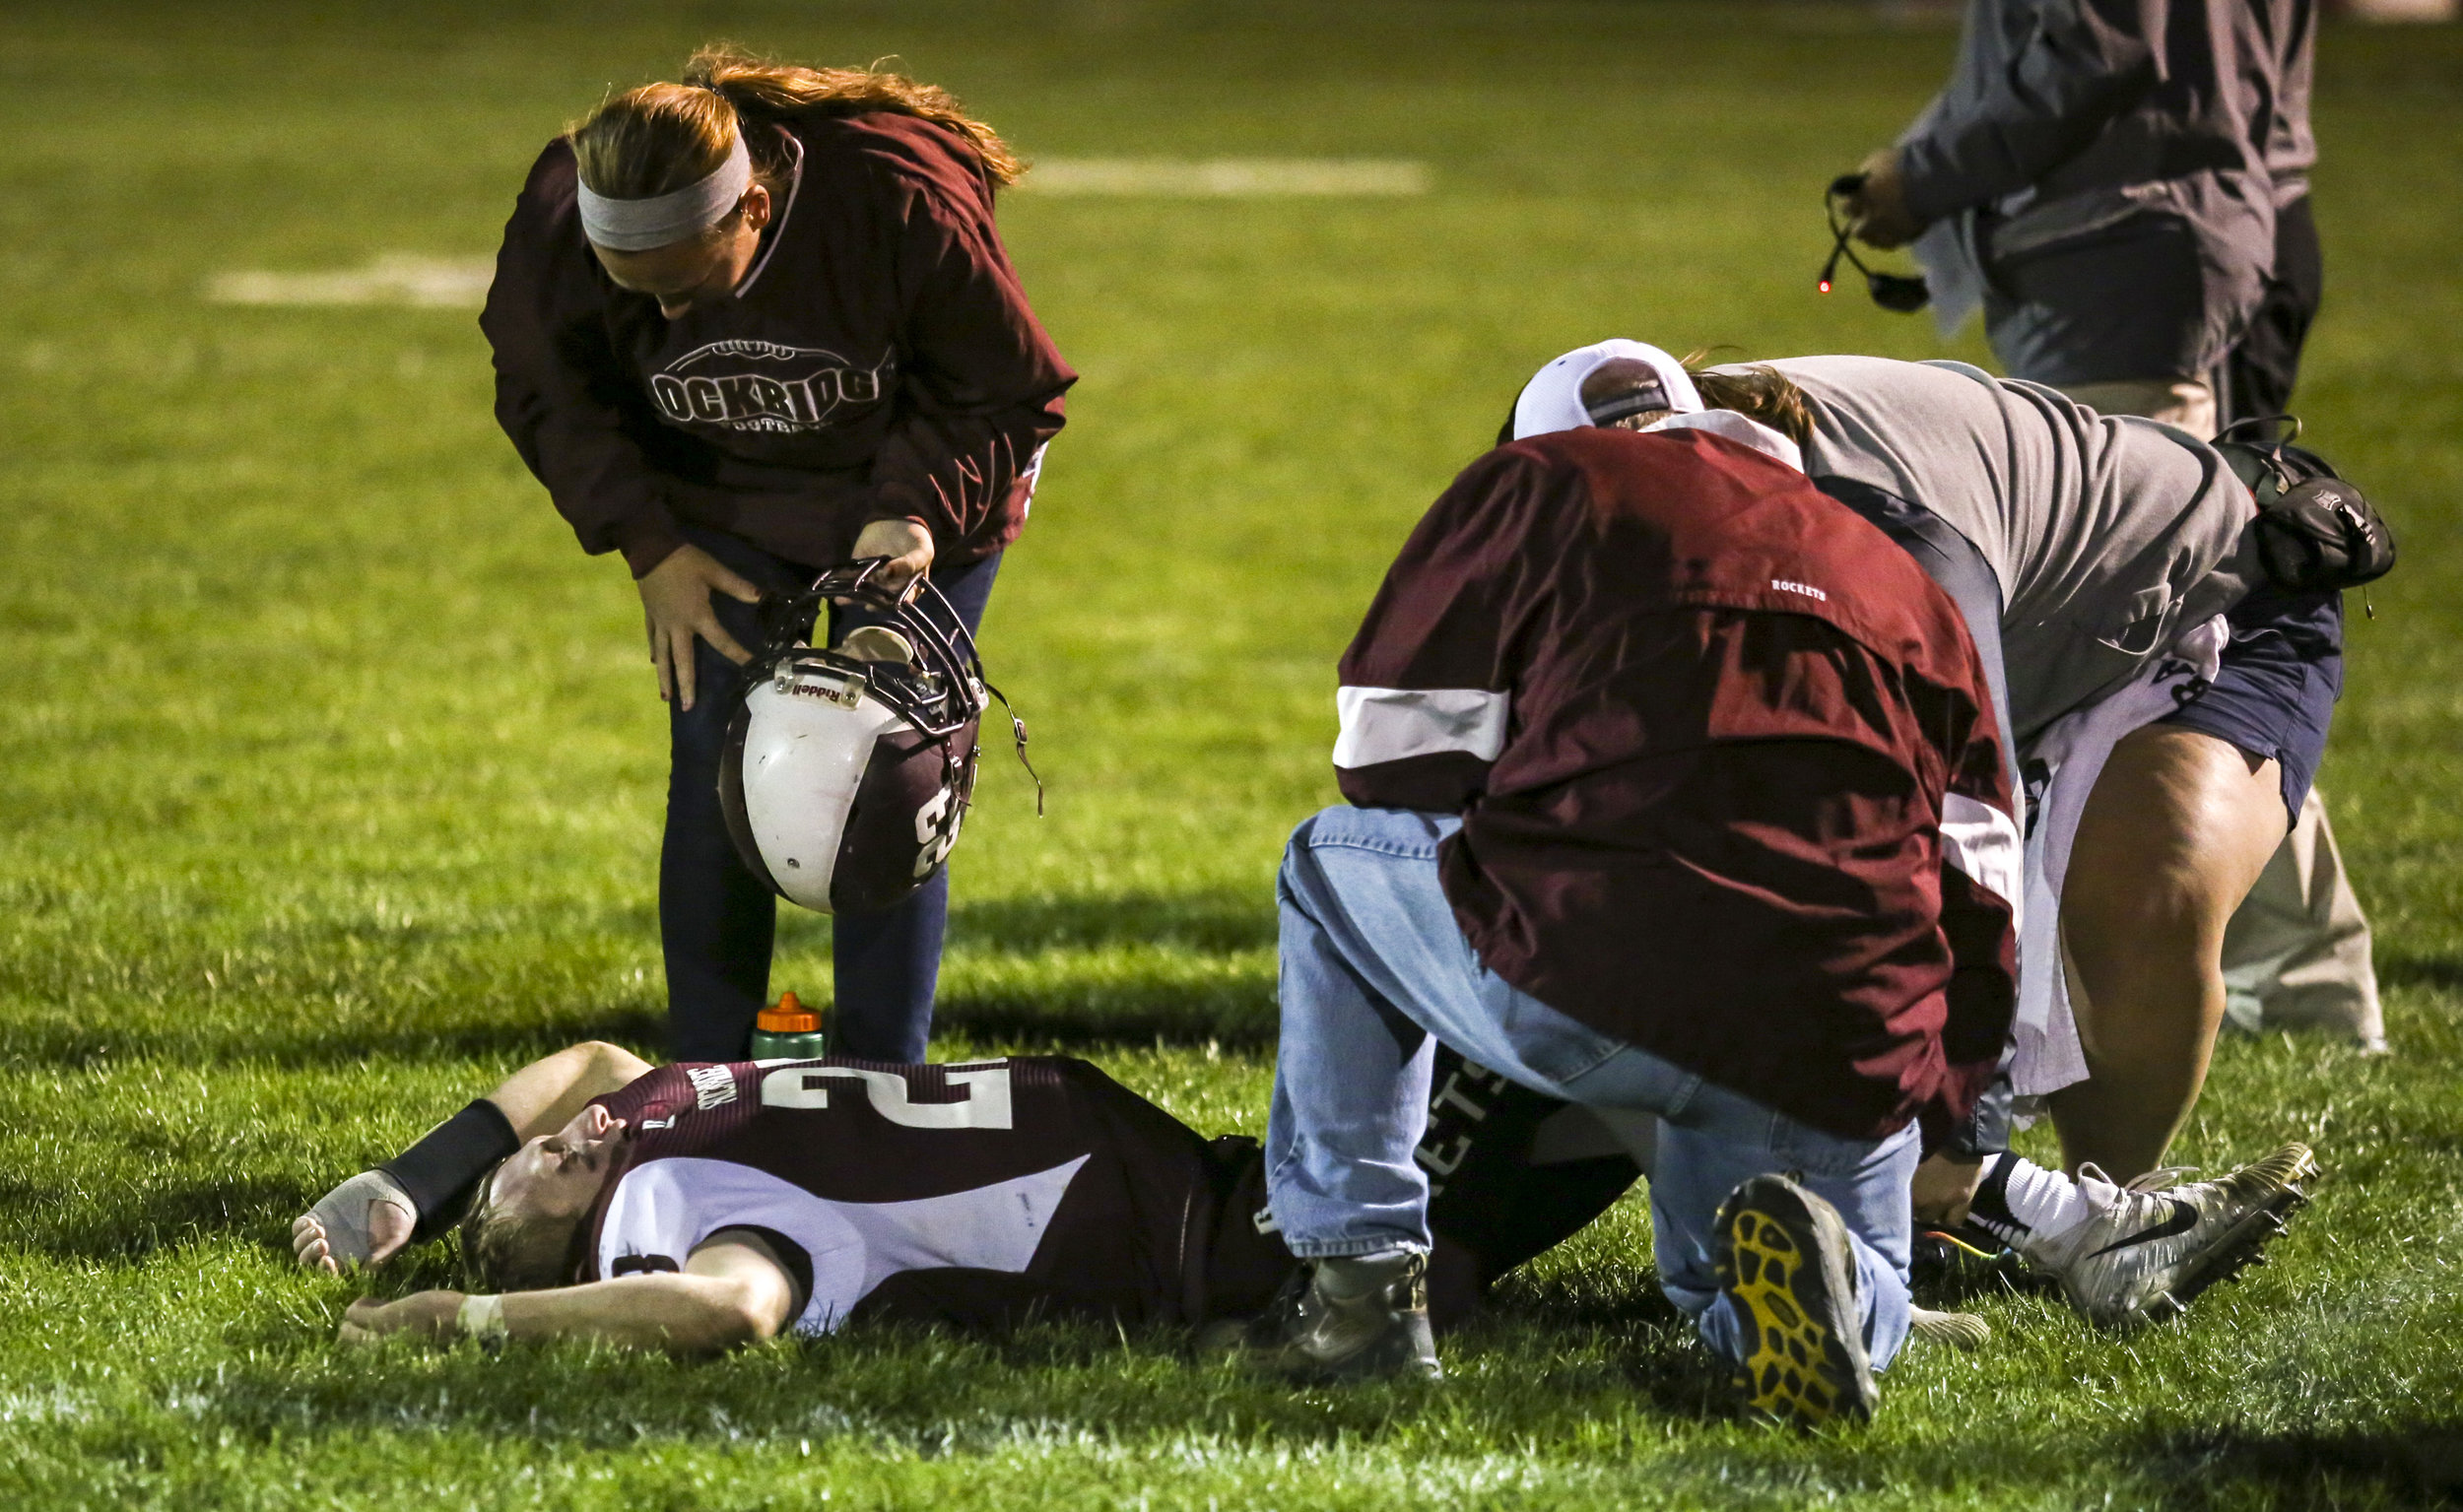 Rockridge's Nathan Parchert (23) lays on the field with na injury that kept him out of the rest of the game during the fourth quarter of their game at Rockridge High School in Edginton, Friday, October 20, 2017.